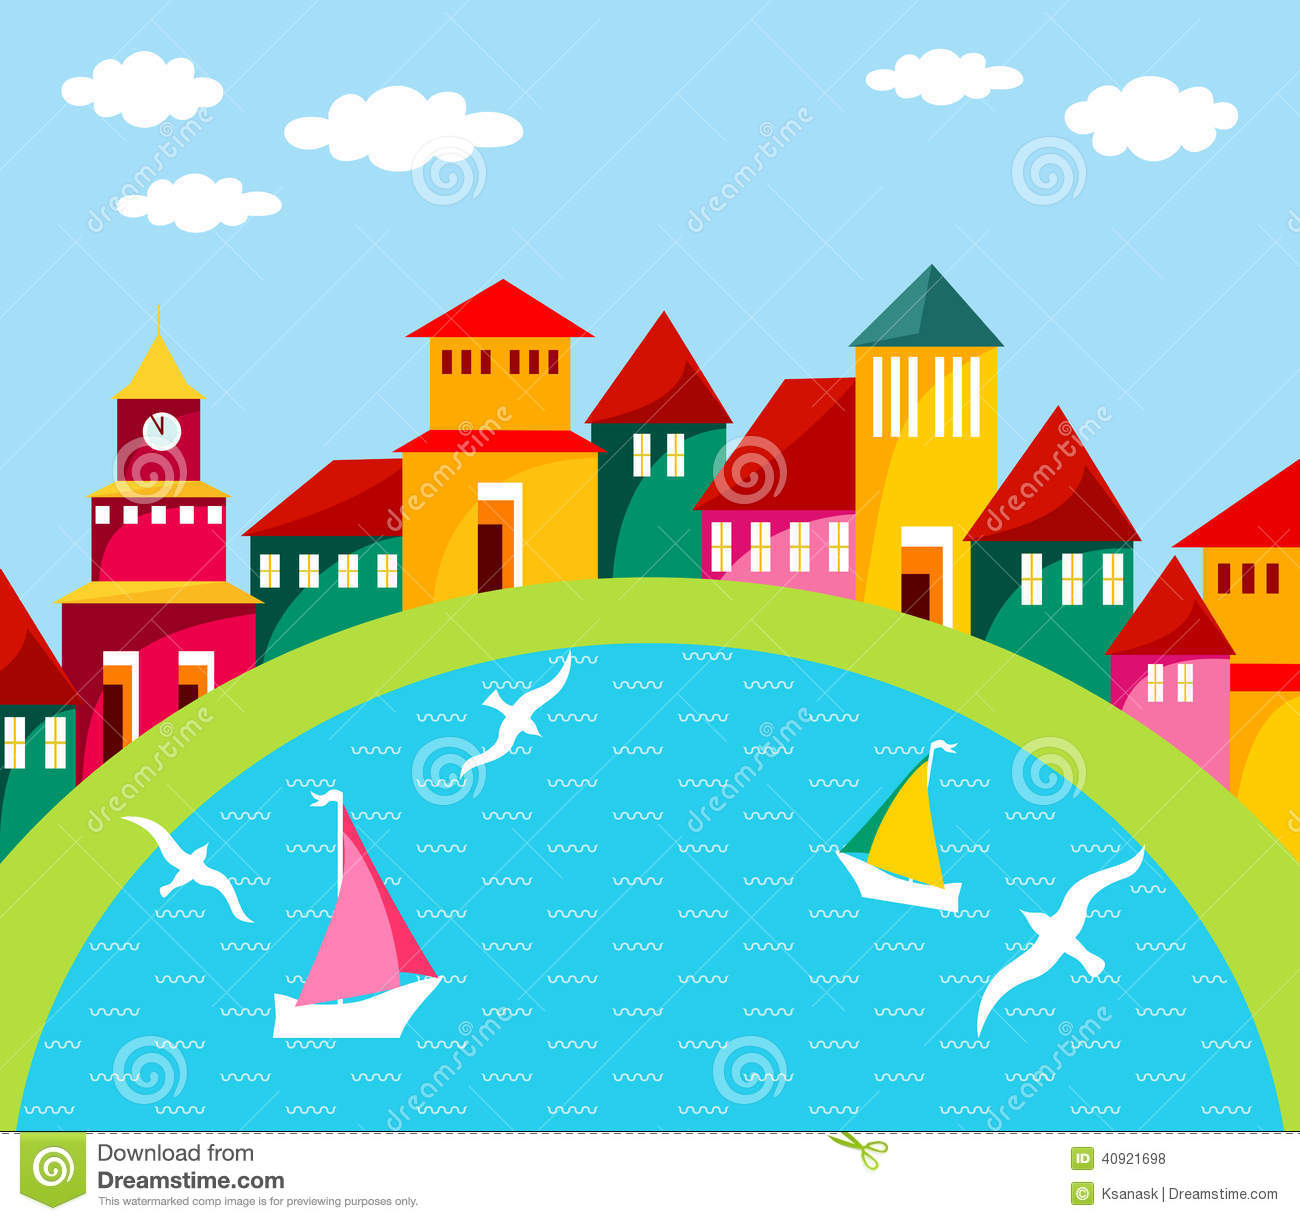 Waterfront clipart #16